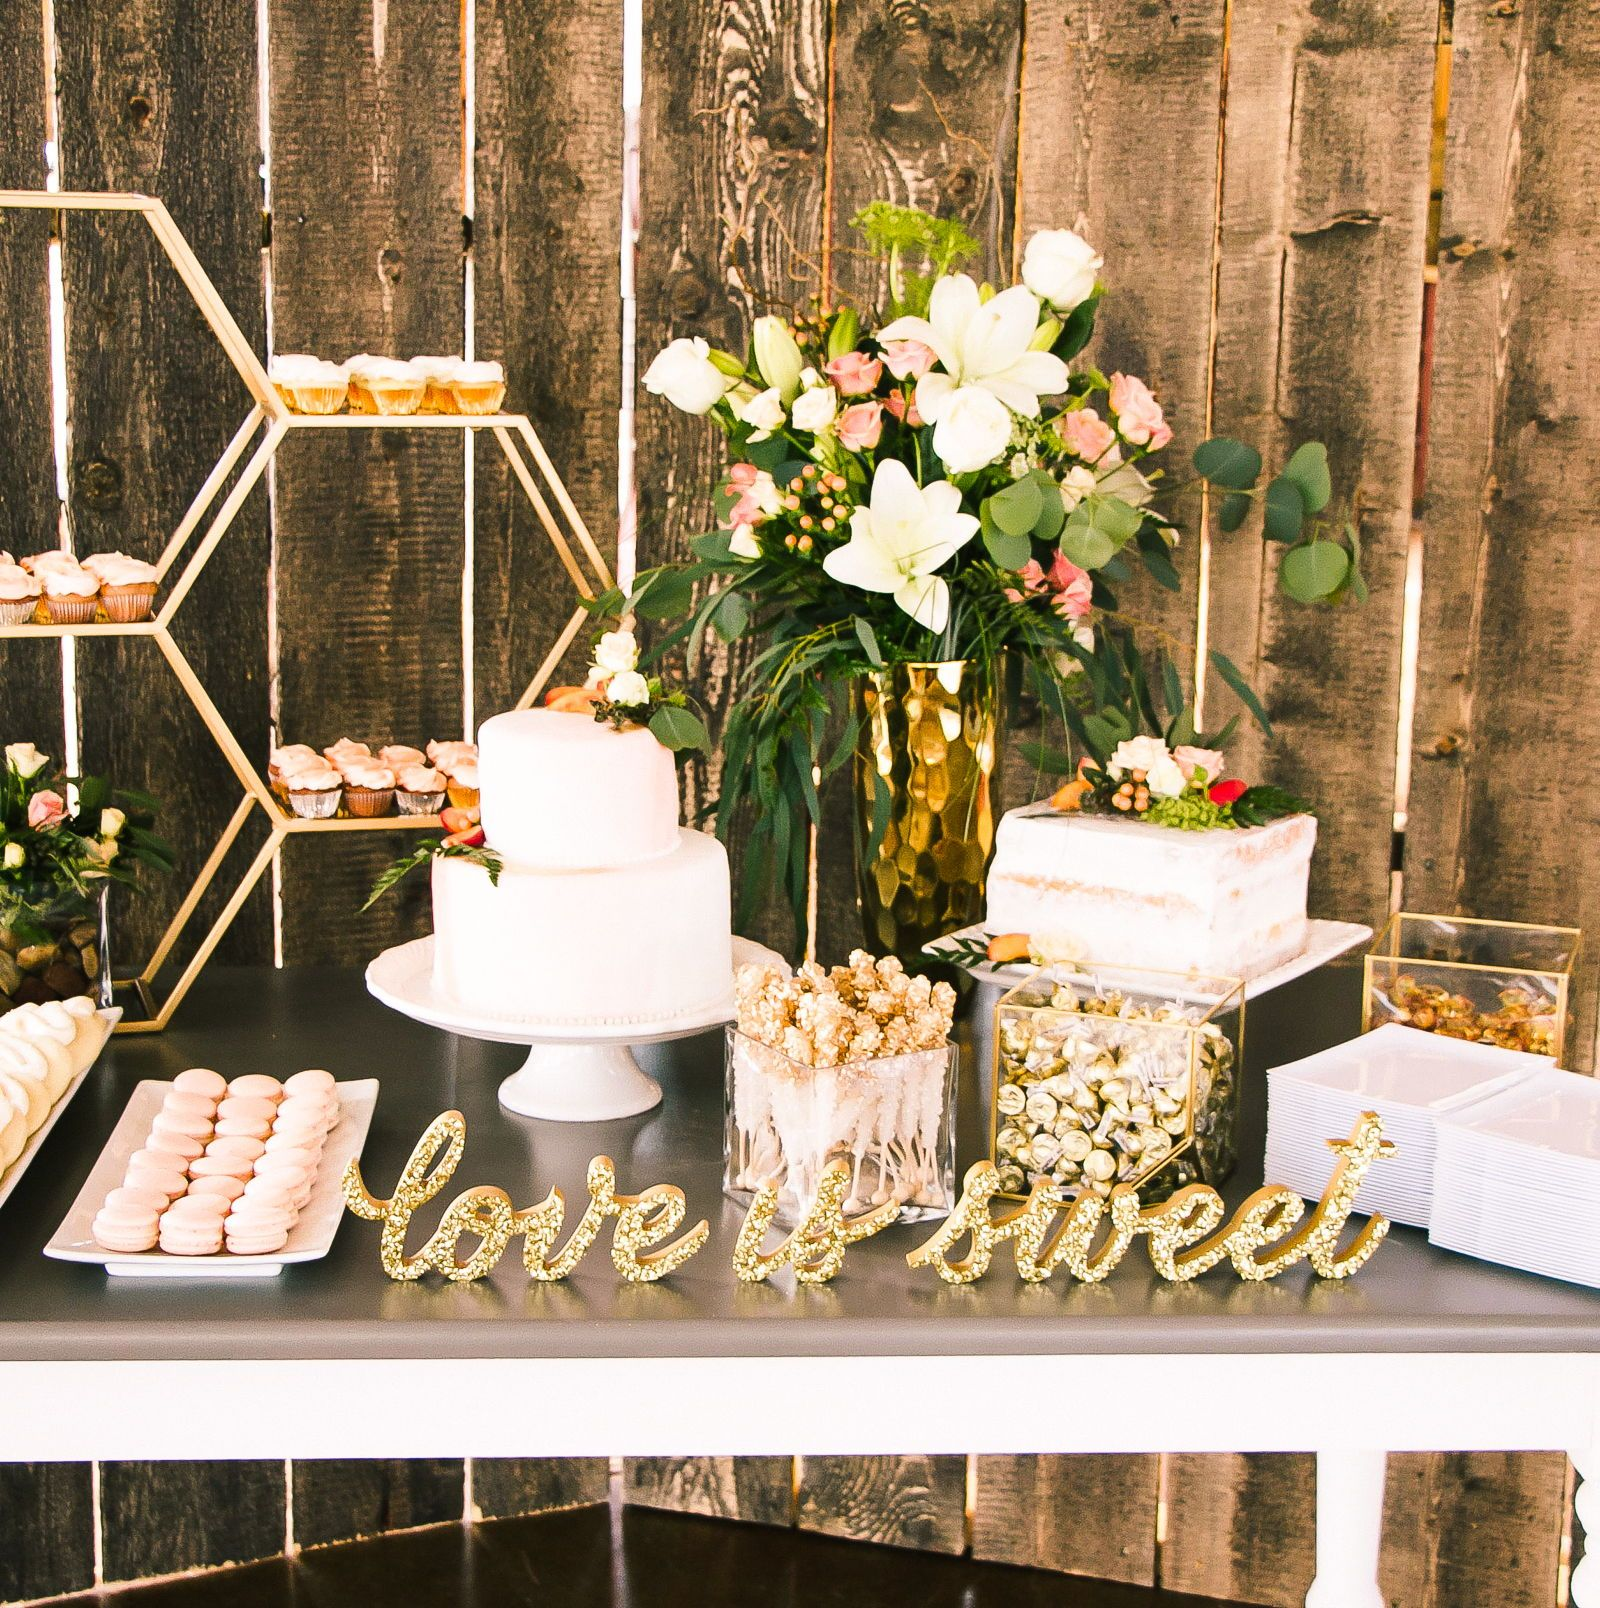 Bridal Shower Table Ideas You Ll Love In 2020 Bridal Shower Desserts Table Wedding Candy Table Wedding Dessert Table Decor